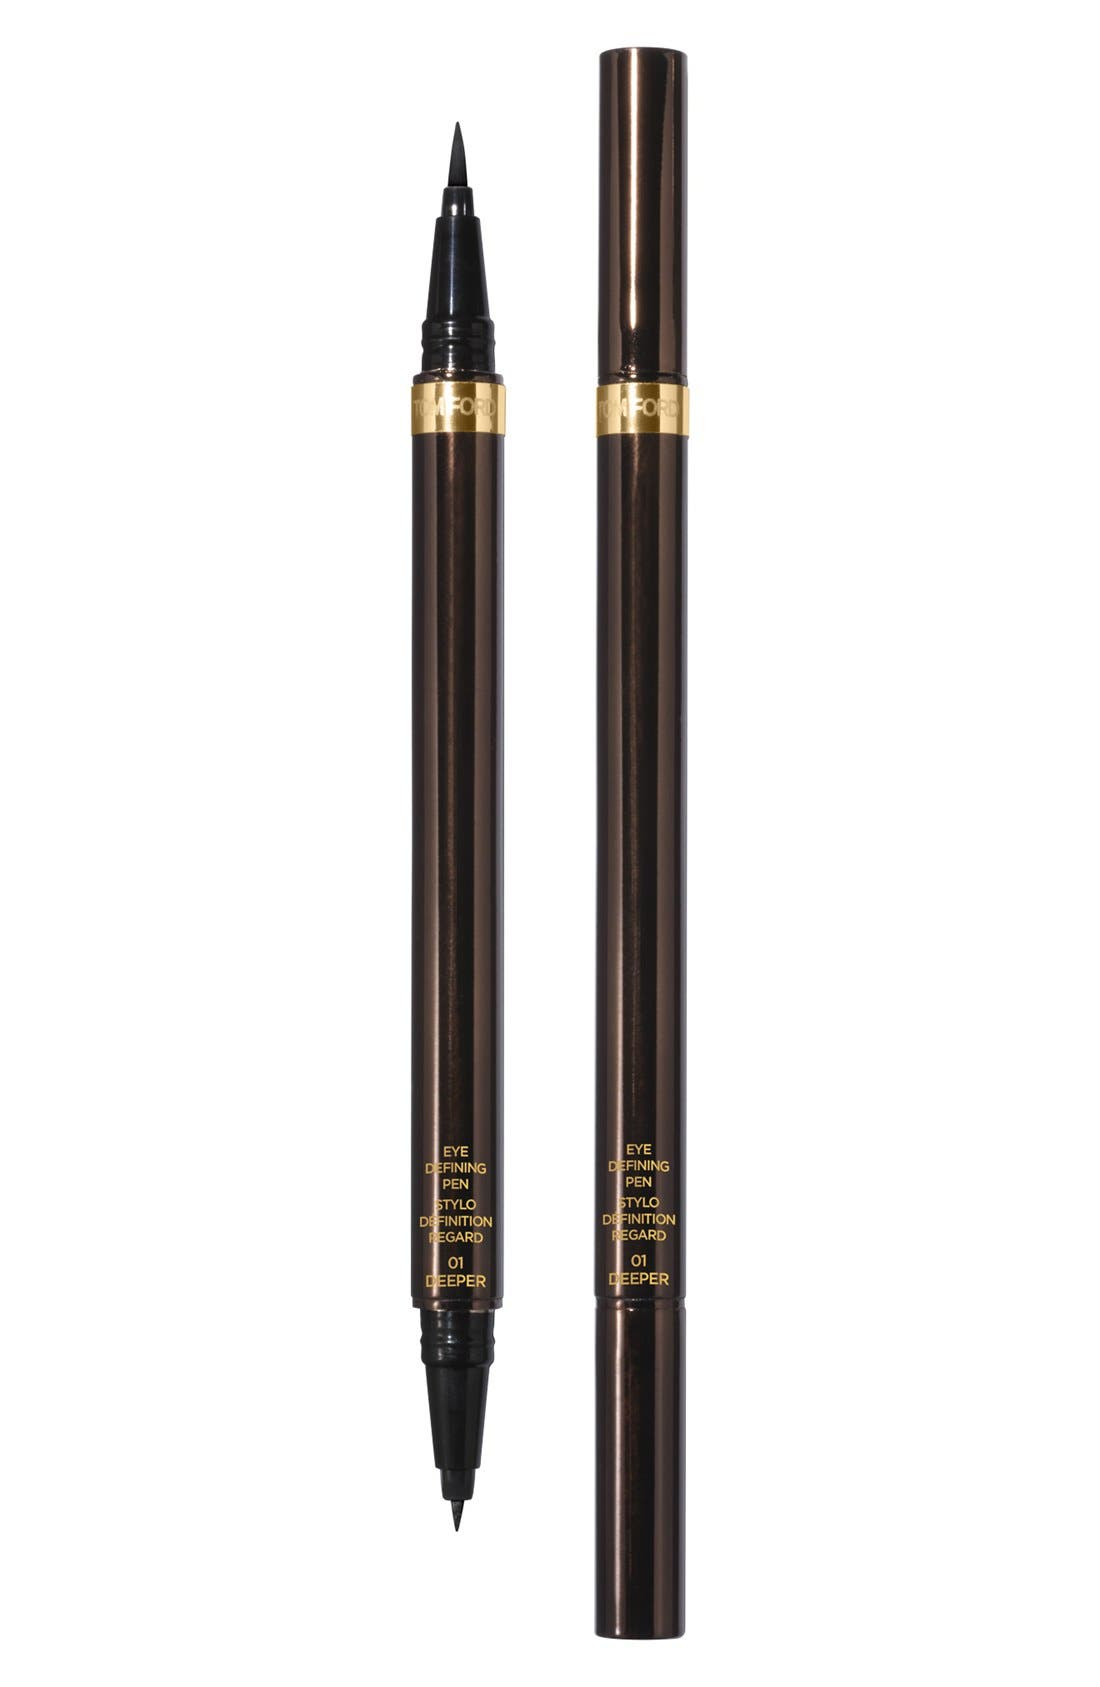 Tom Ford Eye Defining Liquid Liner Pen